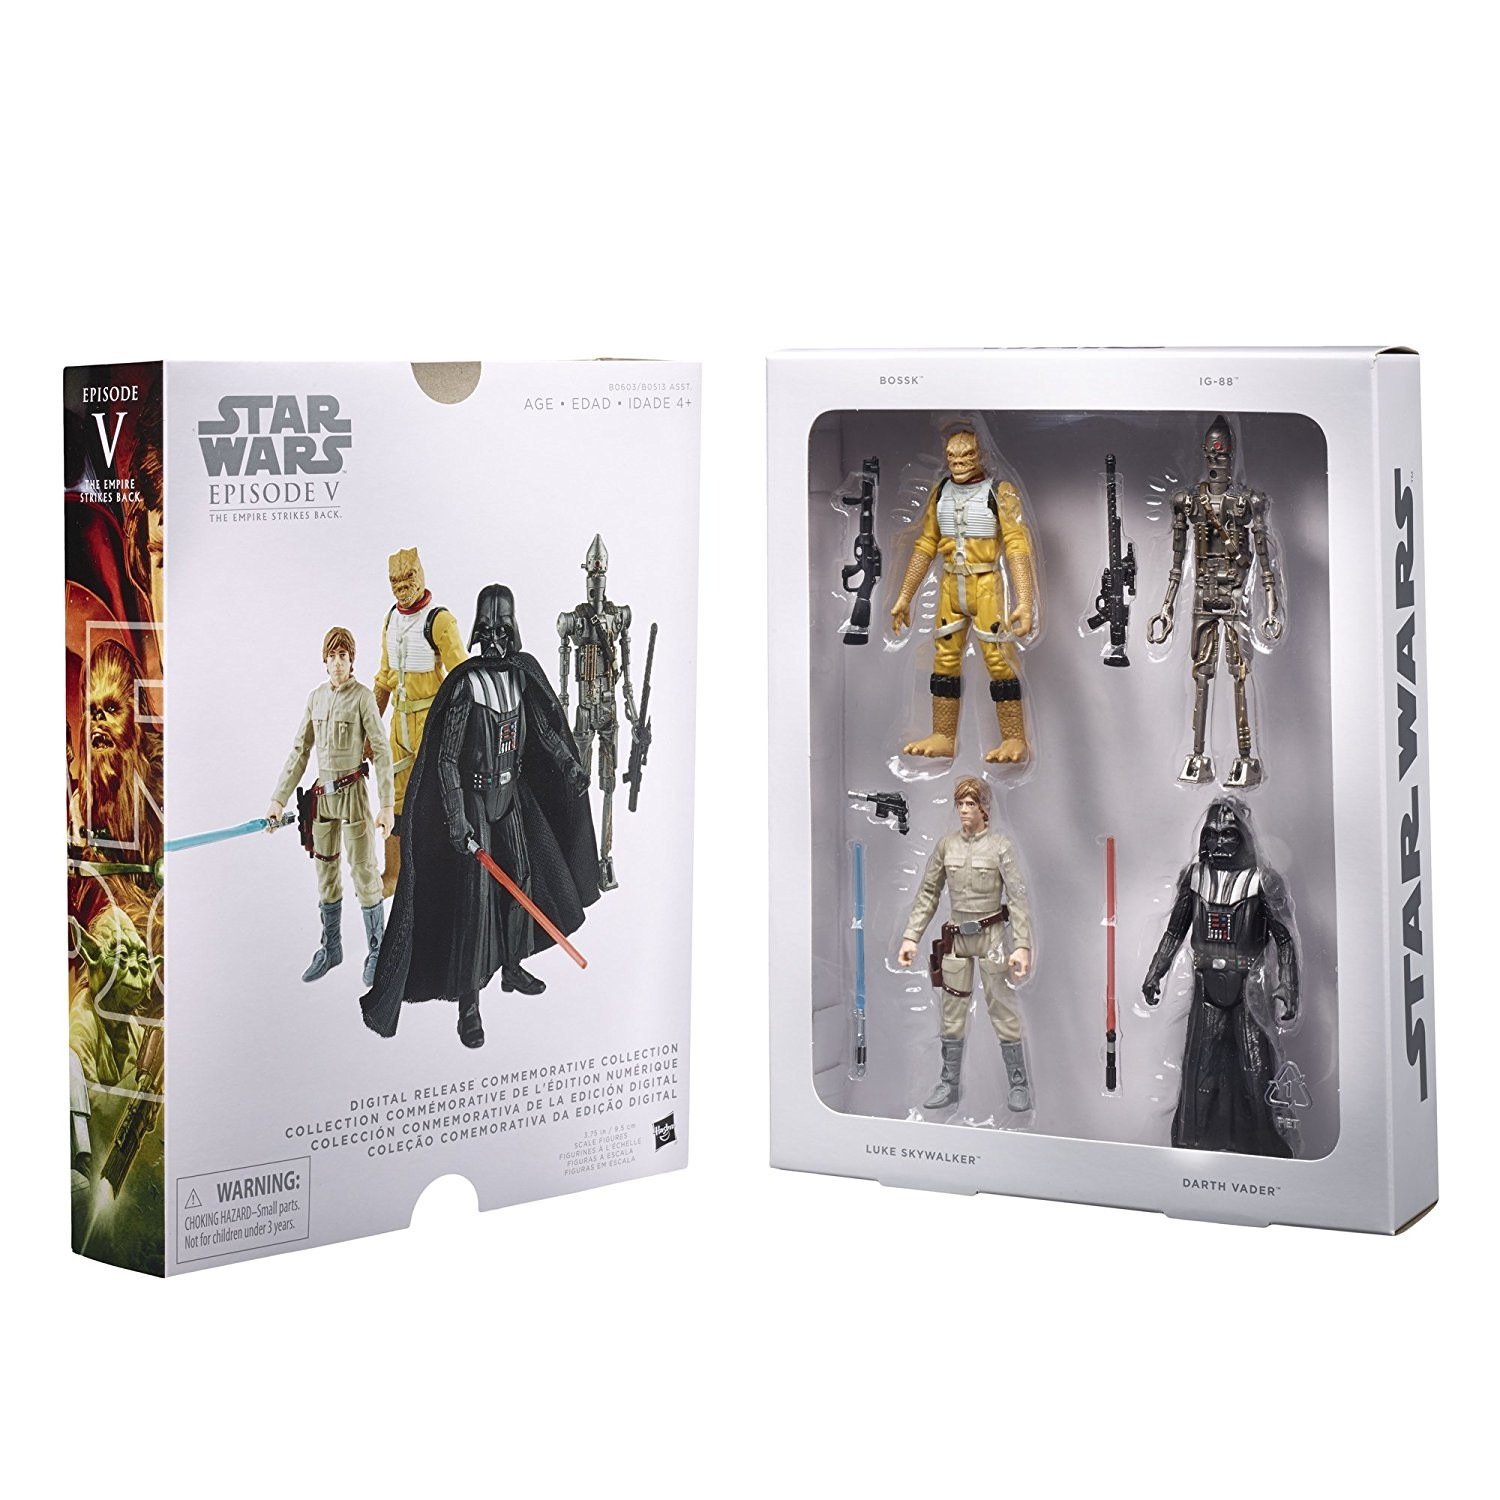 Star Wars Digital Release Commemorative Collection Episode V The Empire Strikes Back Star Wars Rebels Action Figure